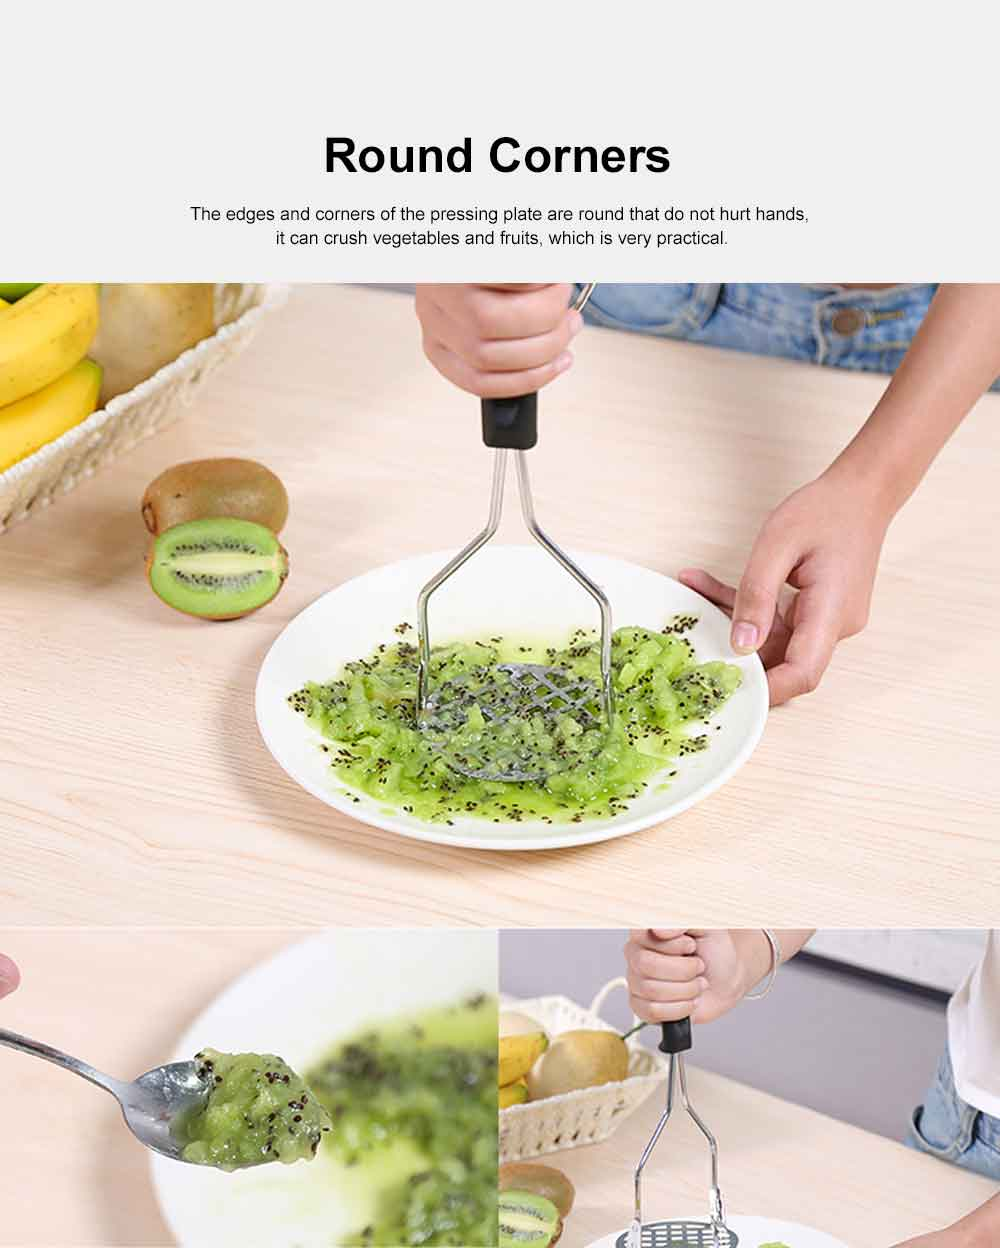 Stainless Steel Garlic Press, Manual Garlic Potatoes Crusher for Household Kitchen Supplies Tool Squeezer Mincer Chopper 5